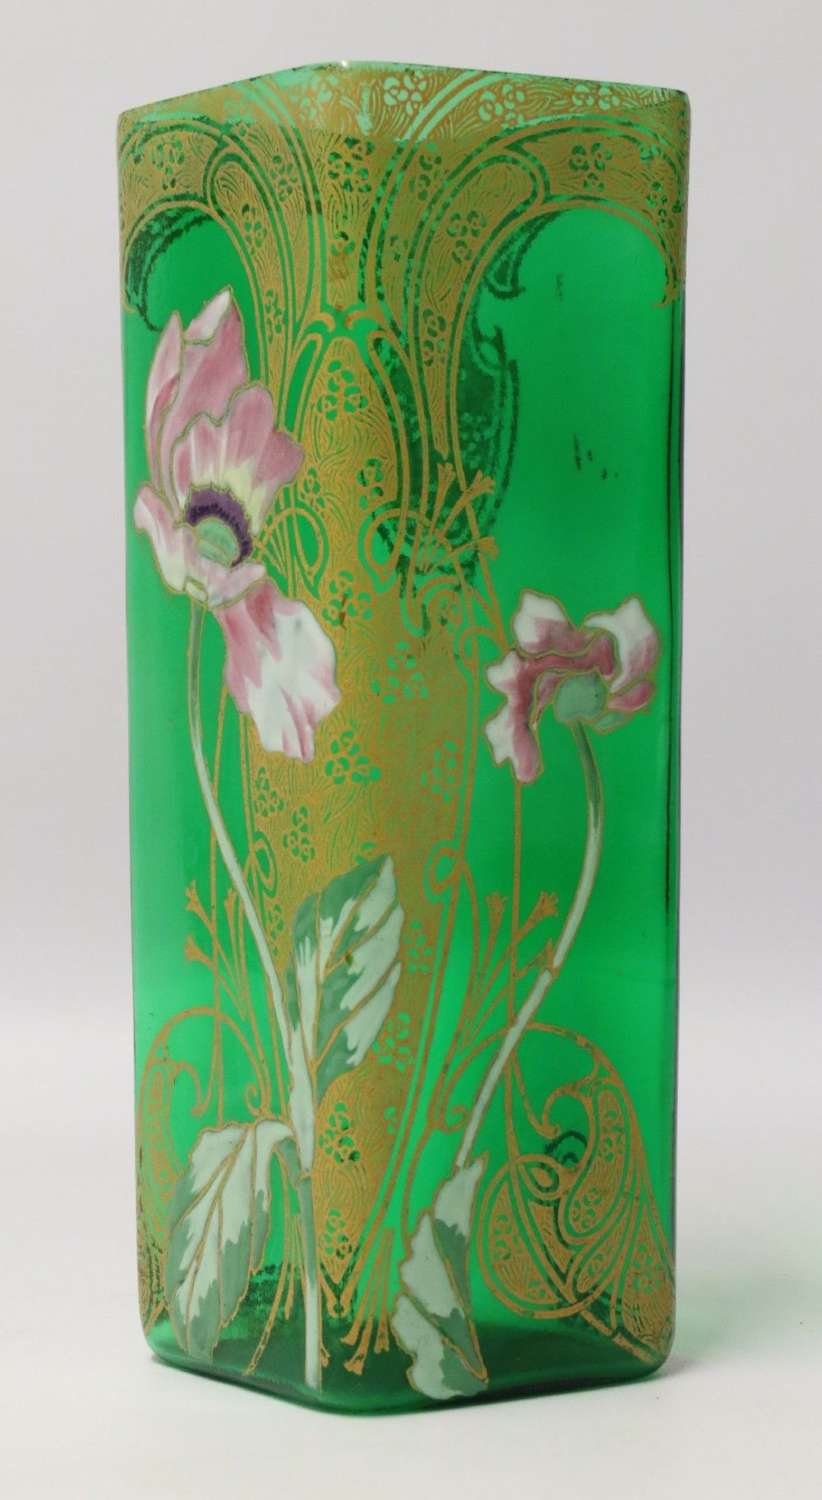 A Late 19th C French Enamelled Glass Vase Attributed To Legras